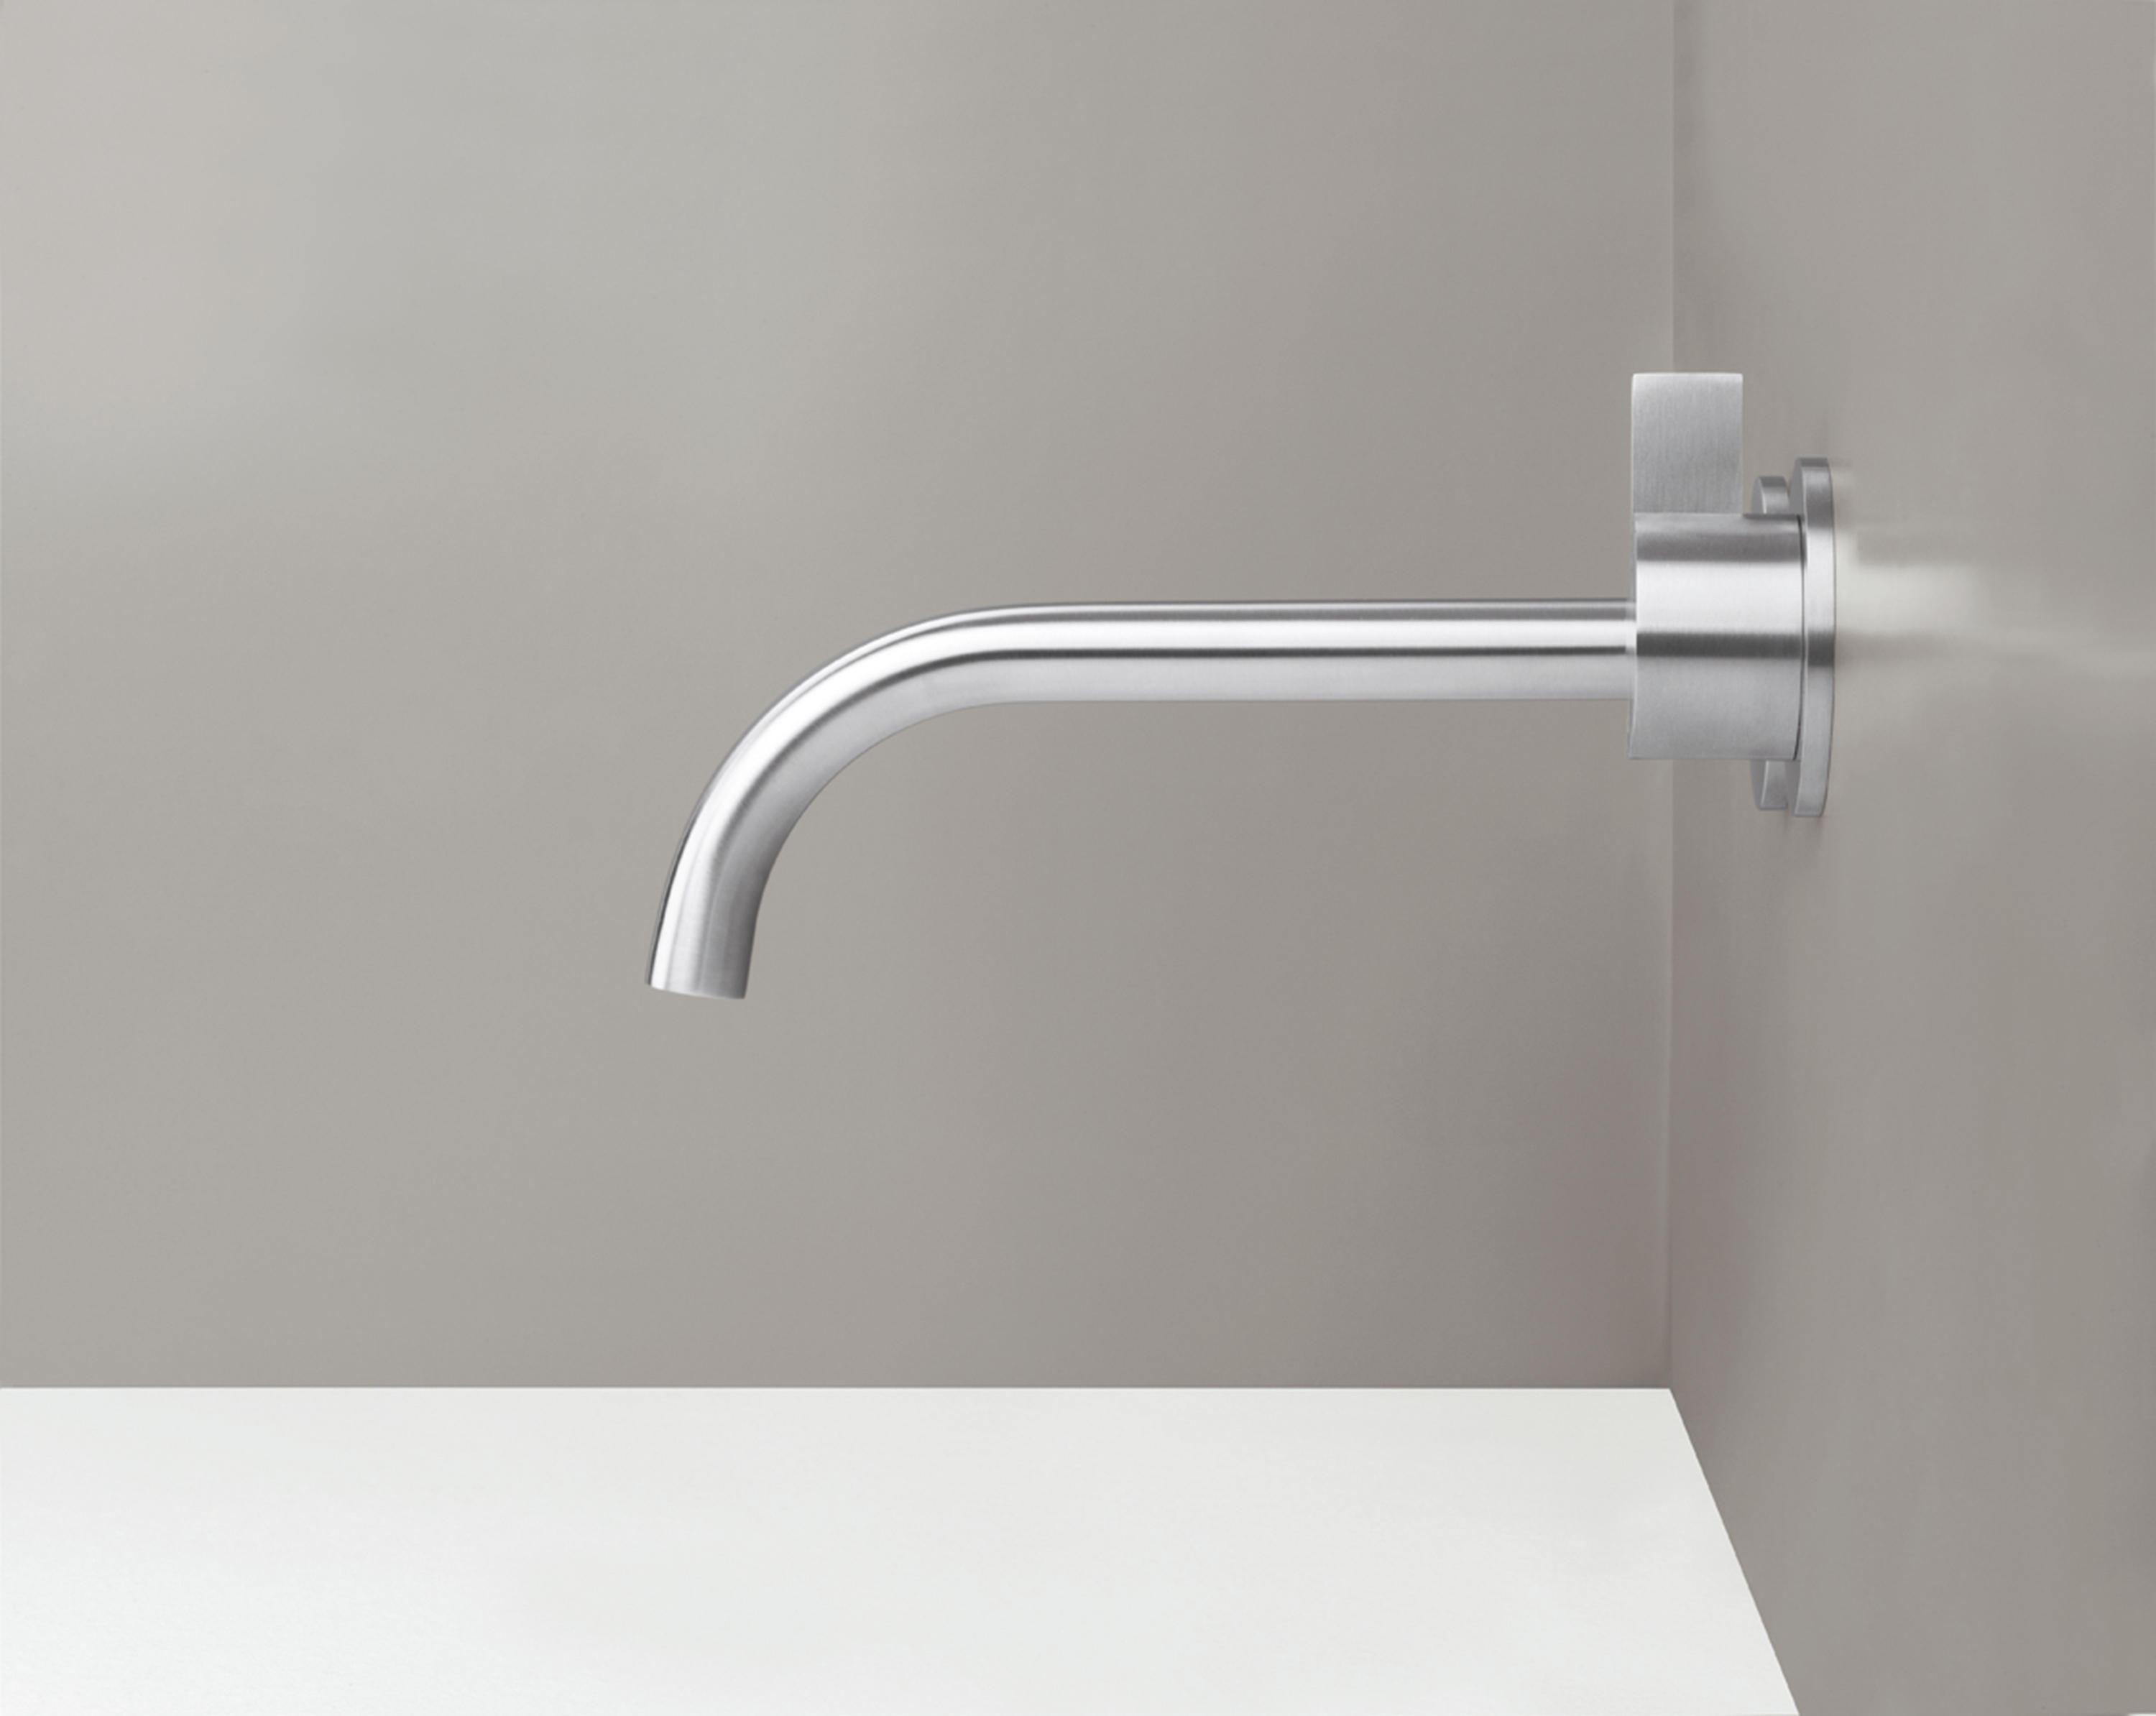 Pb Set01 Wall Mounted Basin Mixer With Spout By Co Wash Taps